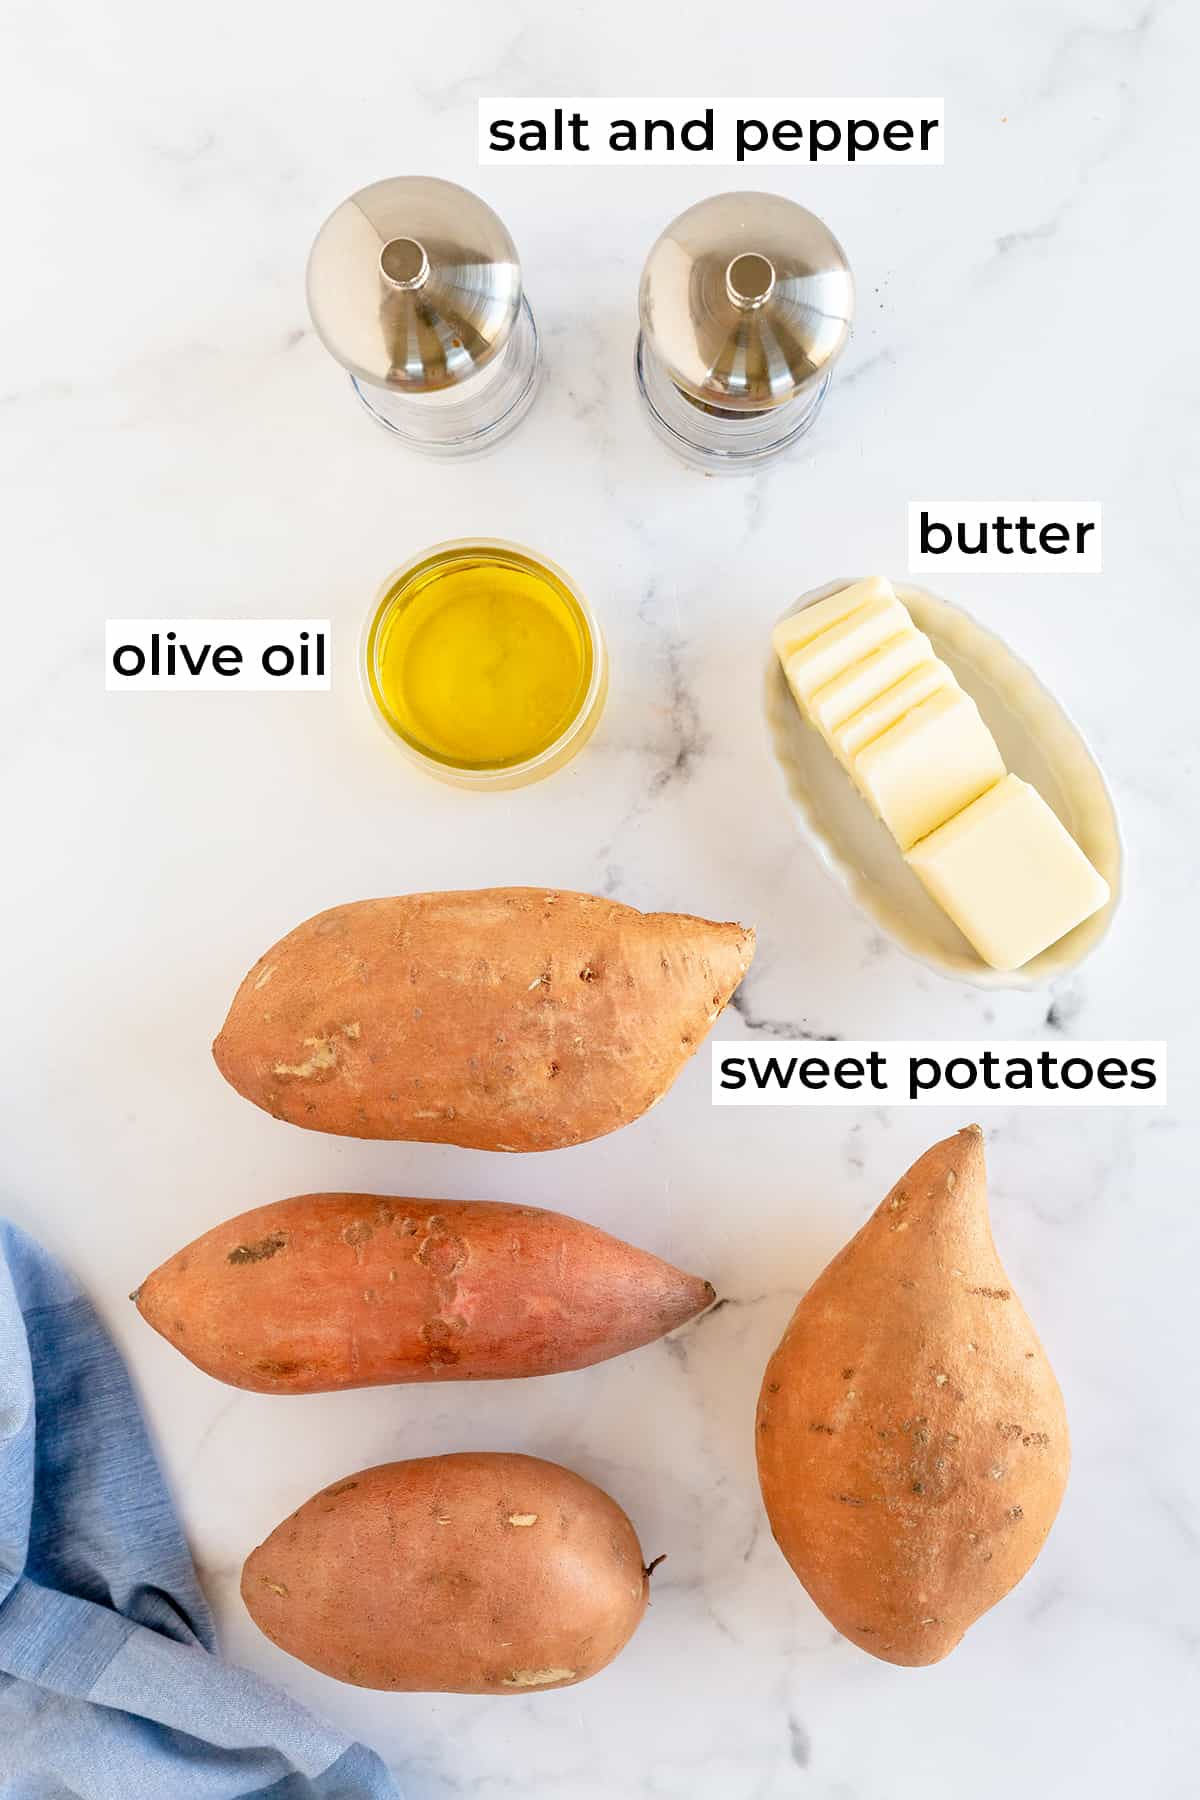 Sweet potatoes, olive oil, butter, salt and pepper with text overlay.